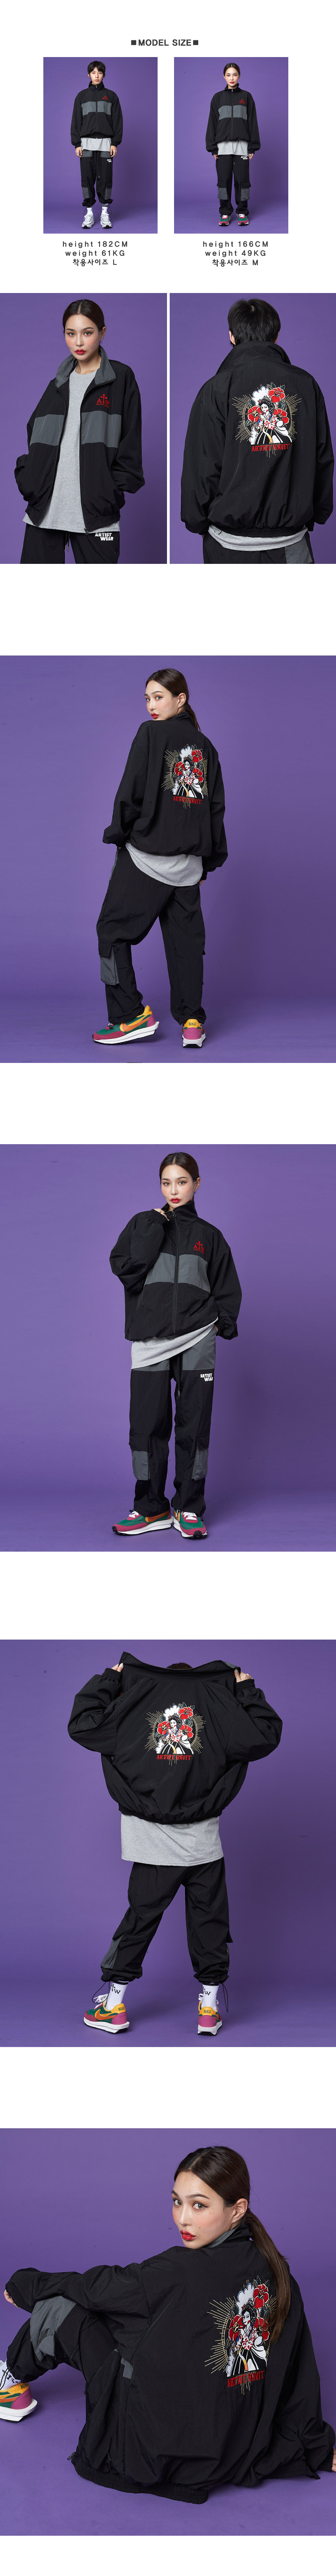 HABIT_KOREA-SCHOOL-WINDBREAK_03.jpg